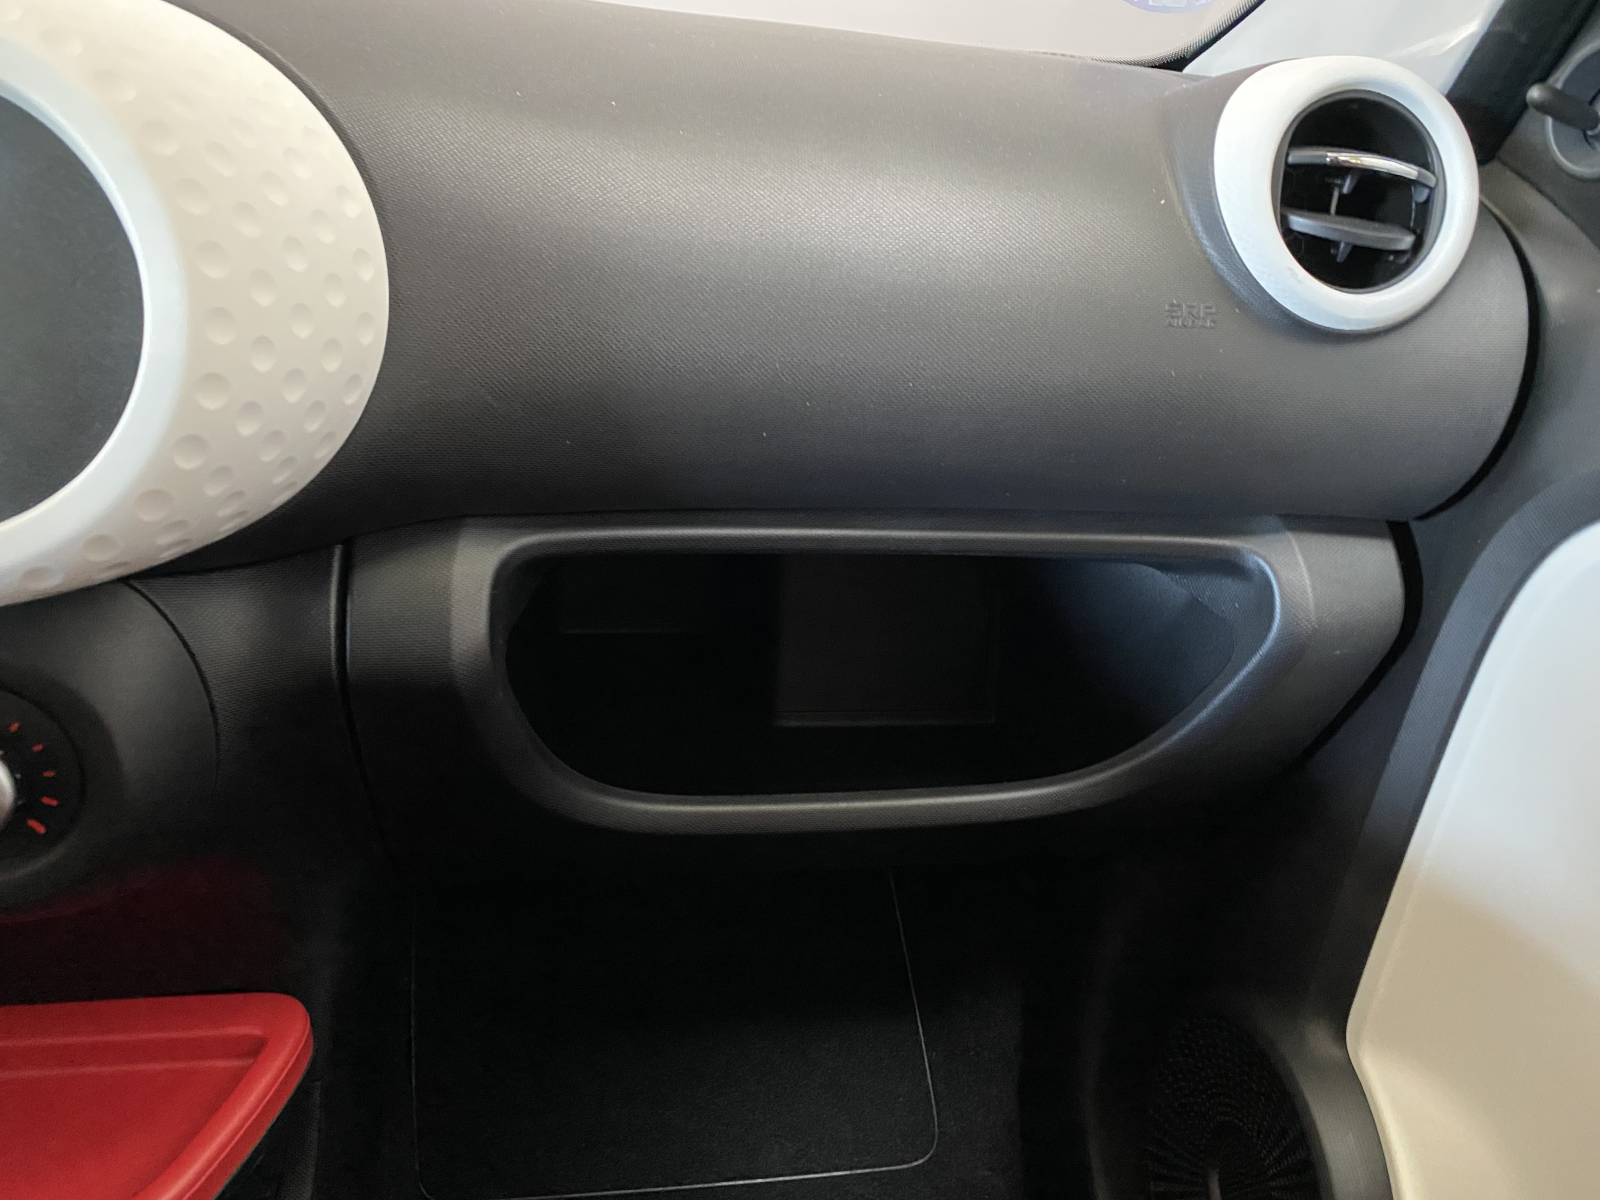 RENAULT Twingo III 0.9 TCe 90 Energy - véhicule d'occasion - Site Internet Faurie - Renault - Faurie Auto Bergerac - 24100 - Bergerac - 27